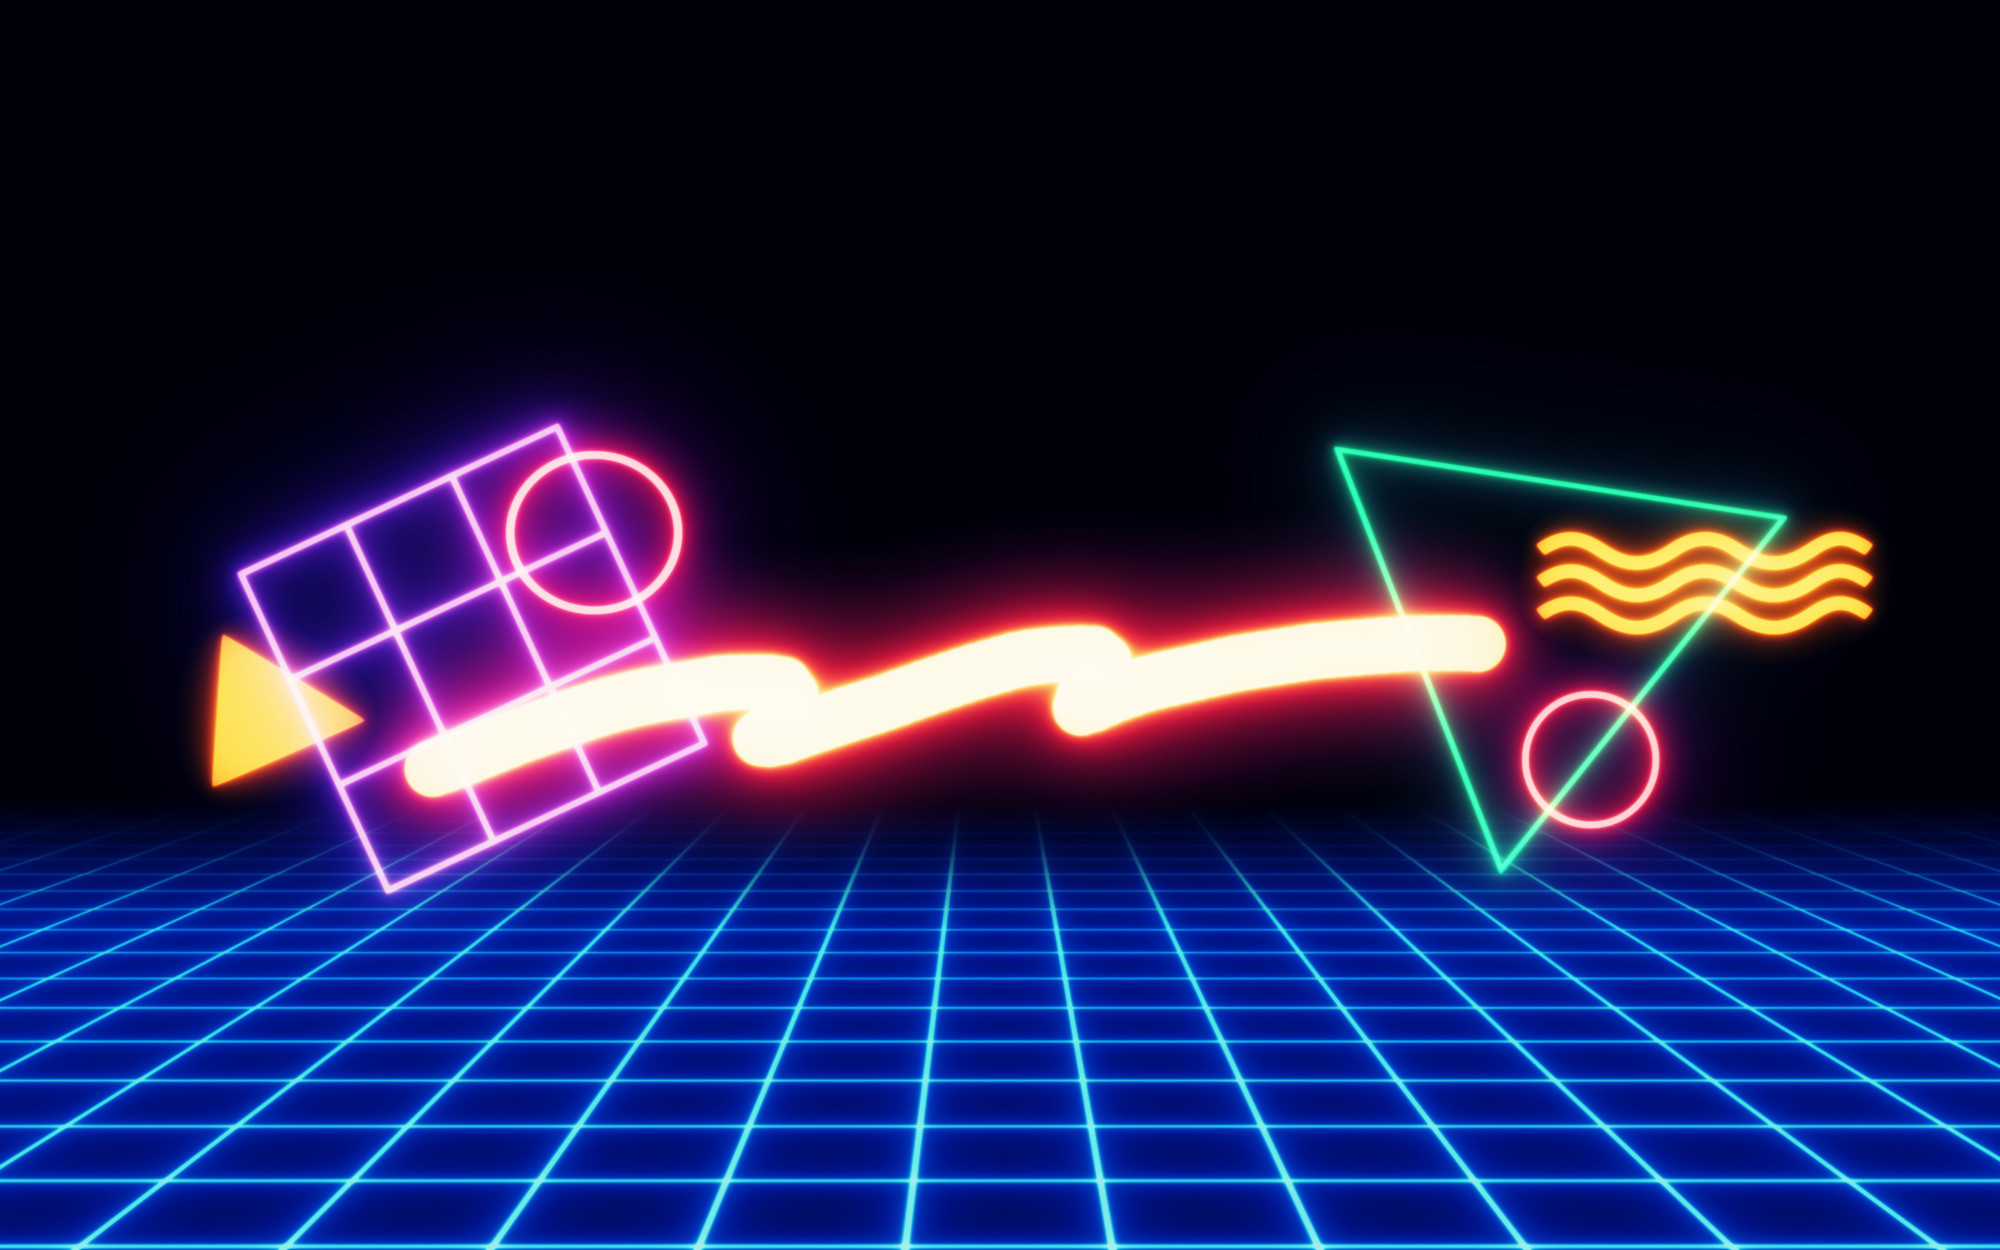 '80s Neon Shapes/Wallpapers · '